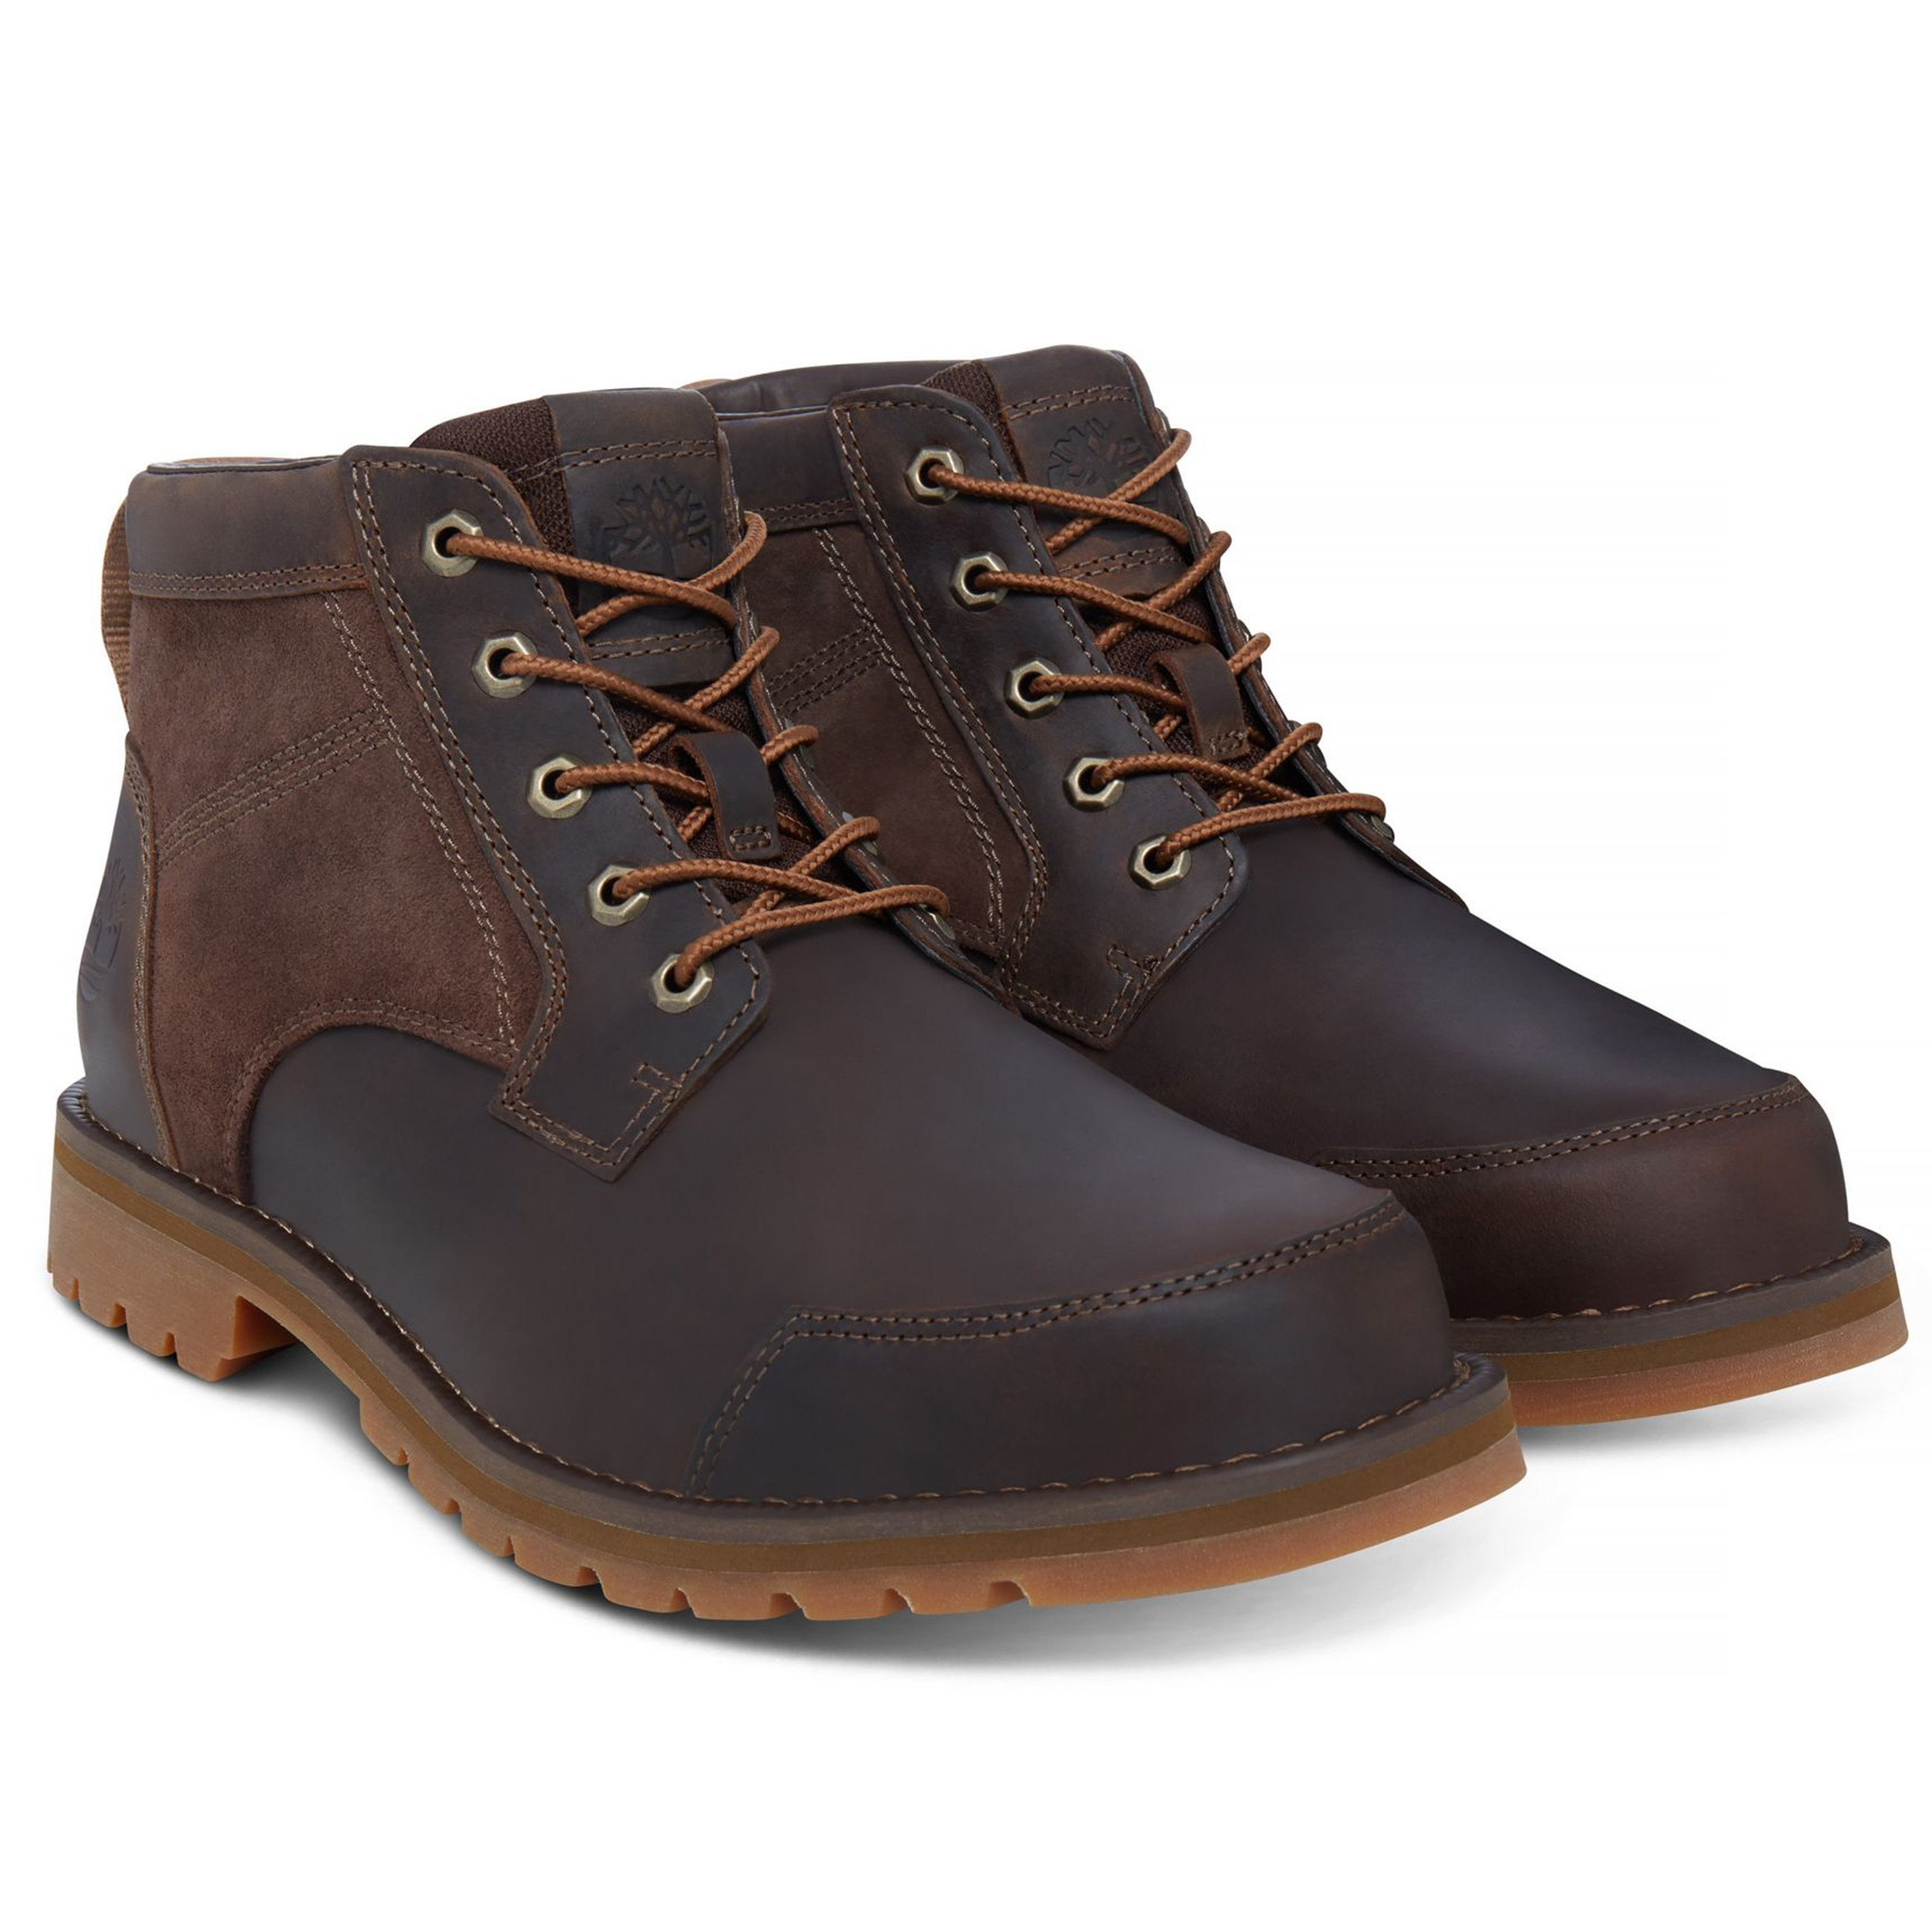 a9f77d670fea Timberland Mens Larchmont Chukka Leather Boots Boots Dark Brown ...